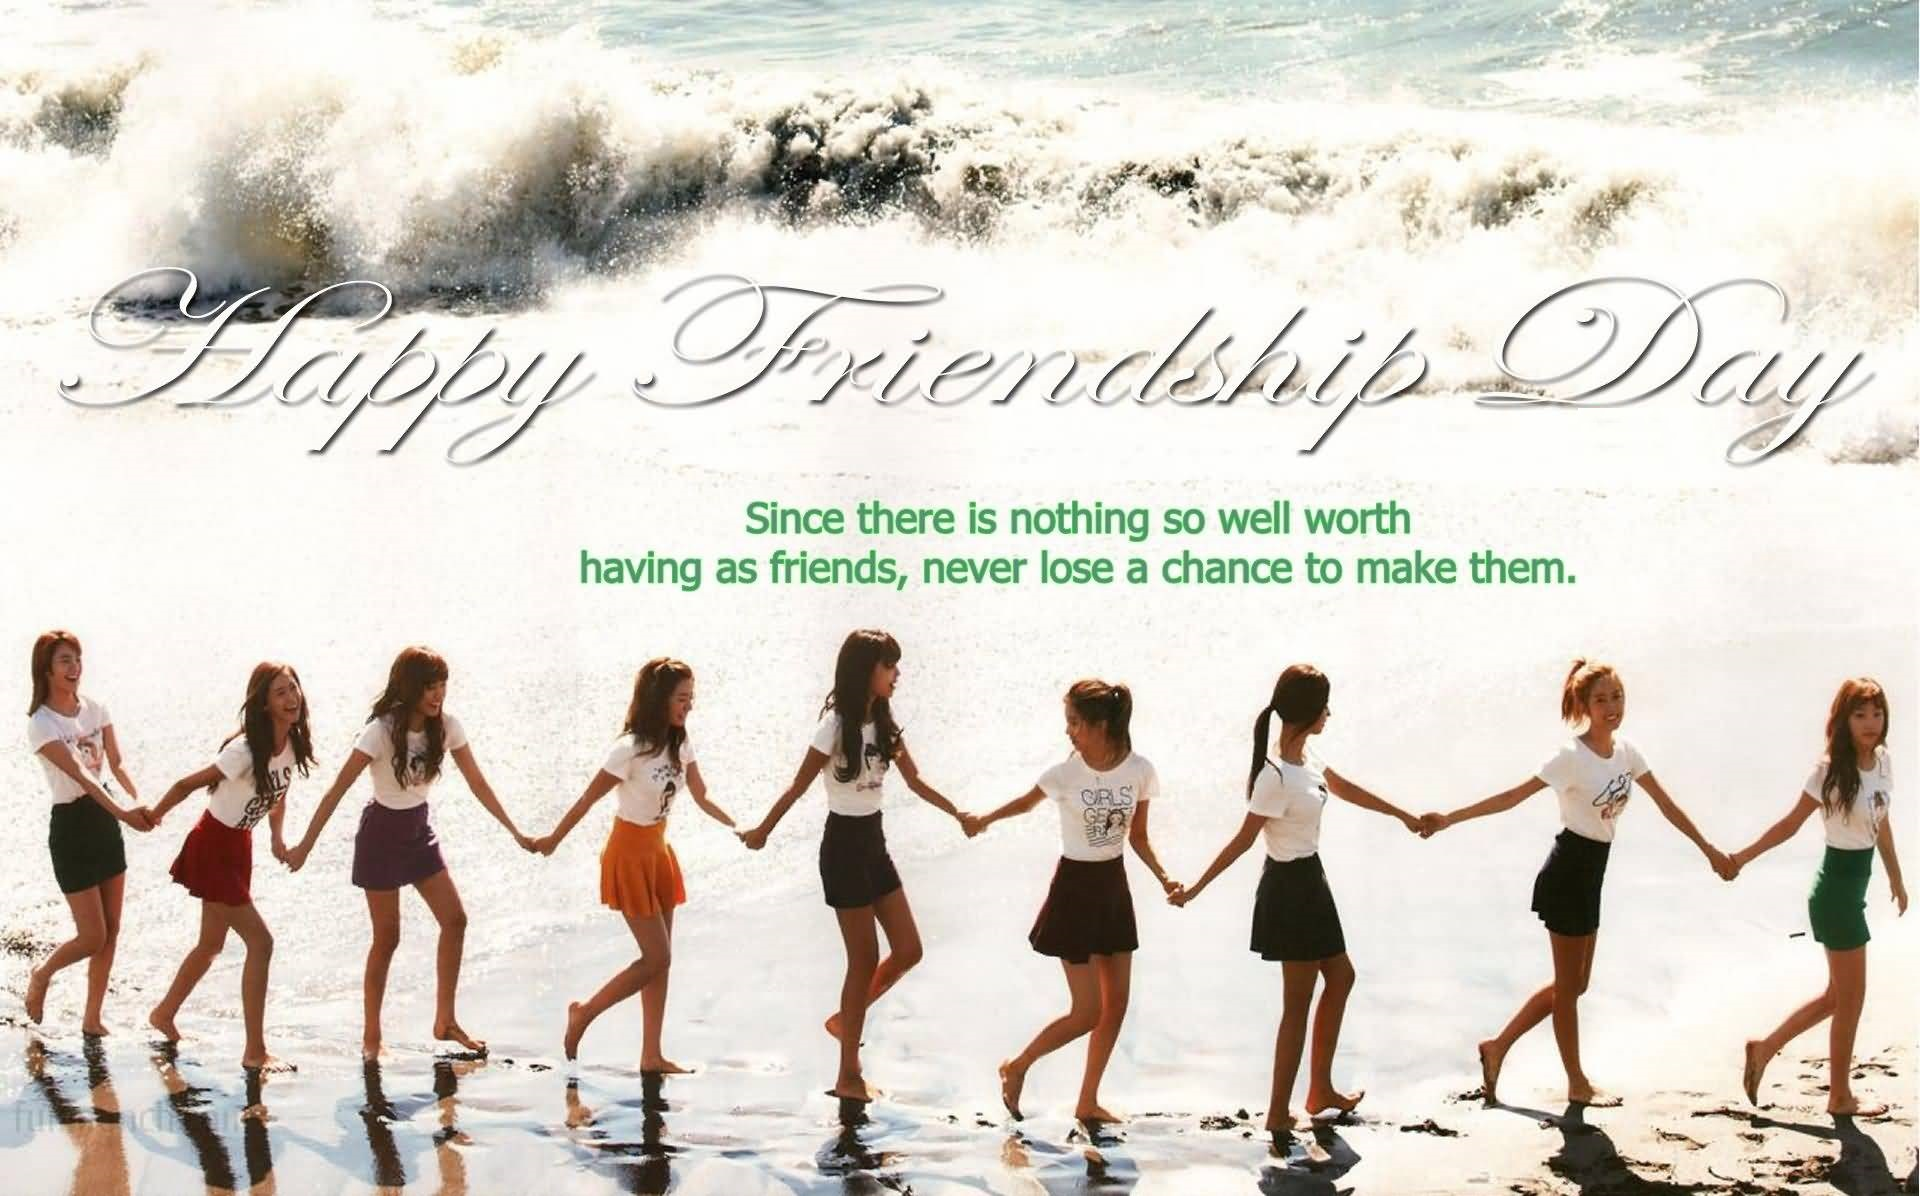 Happy Friendship Day Quotes For Boyfriends